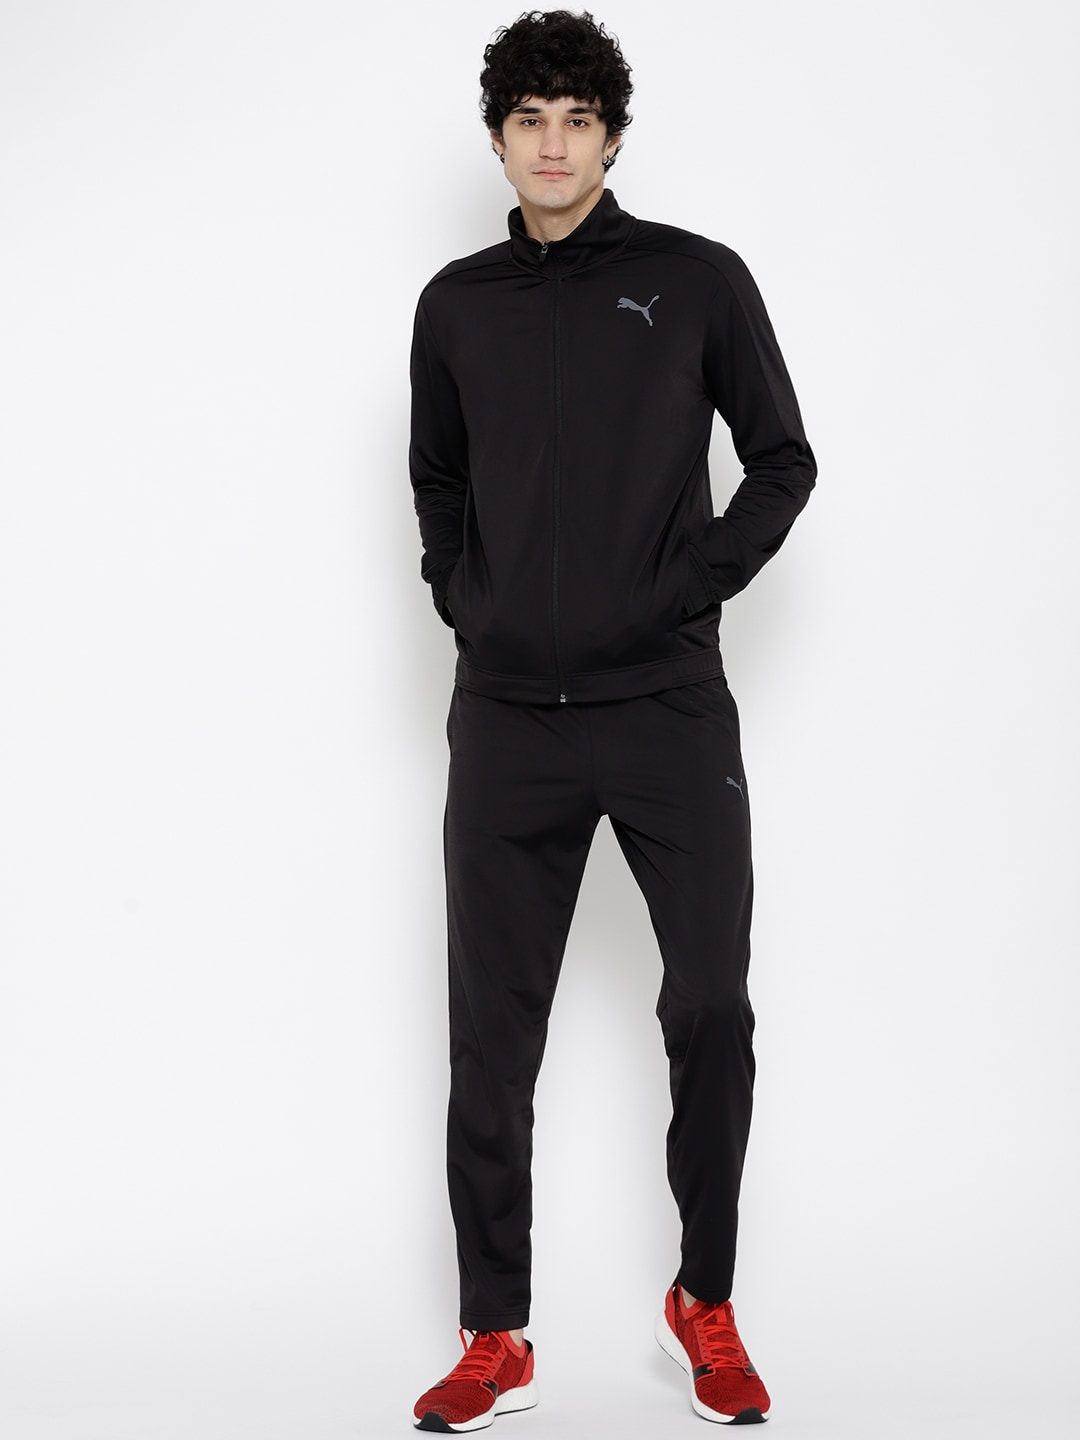 e5d043f7c10e Puma For Men Tracksuits - Buy Puma For Men Tracksuits online in India